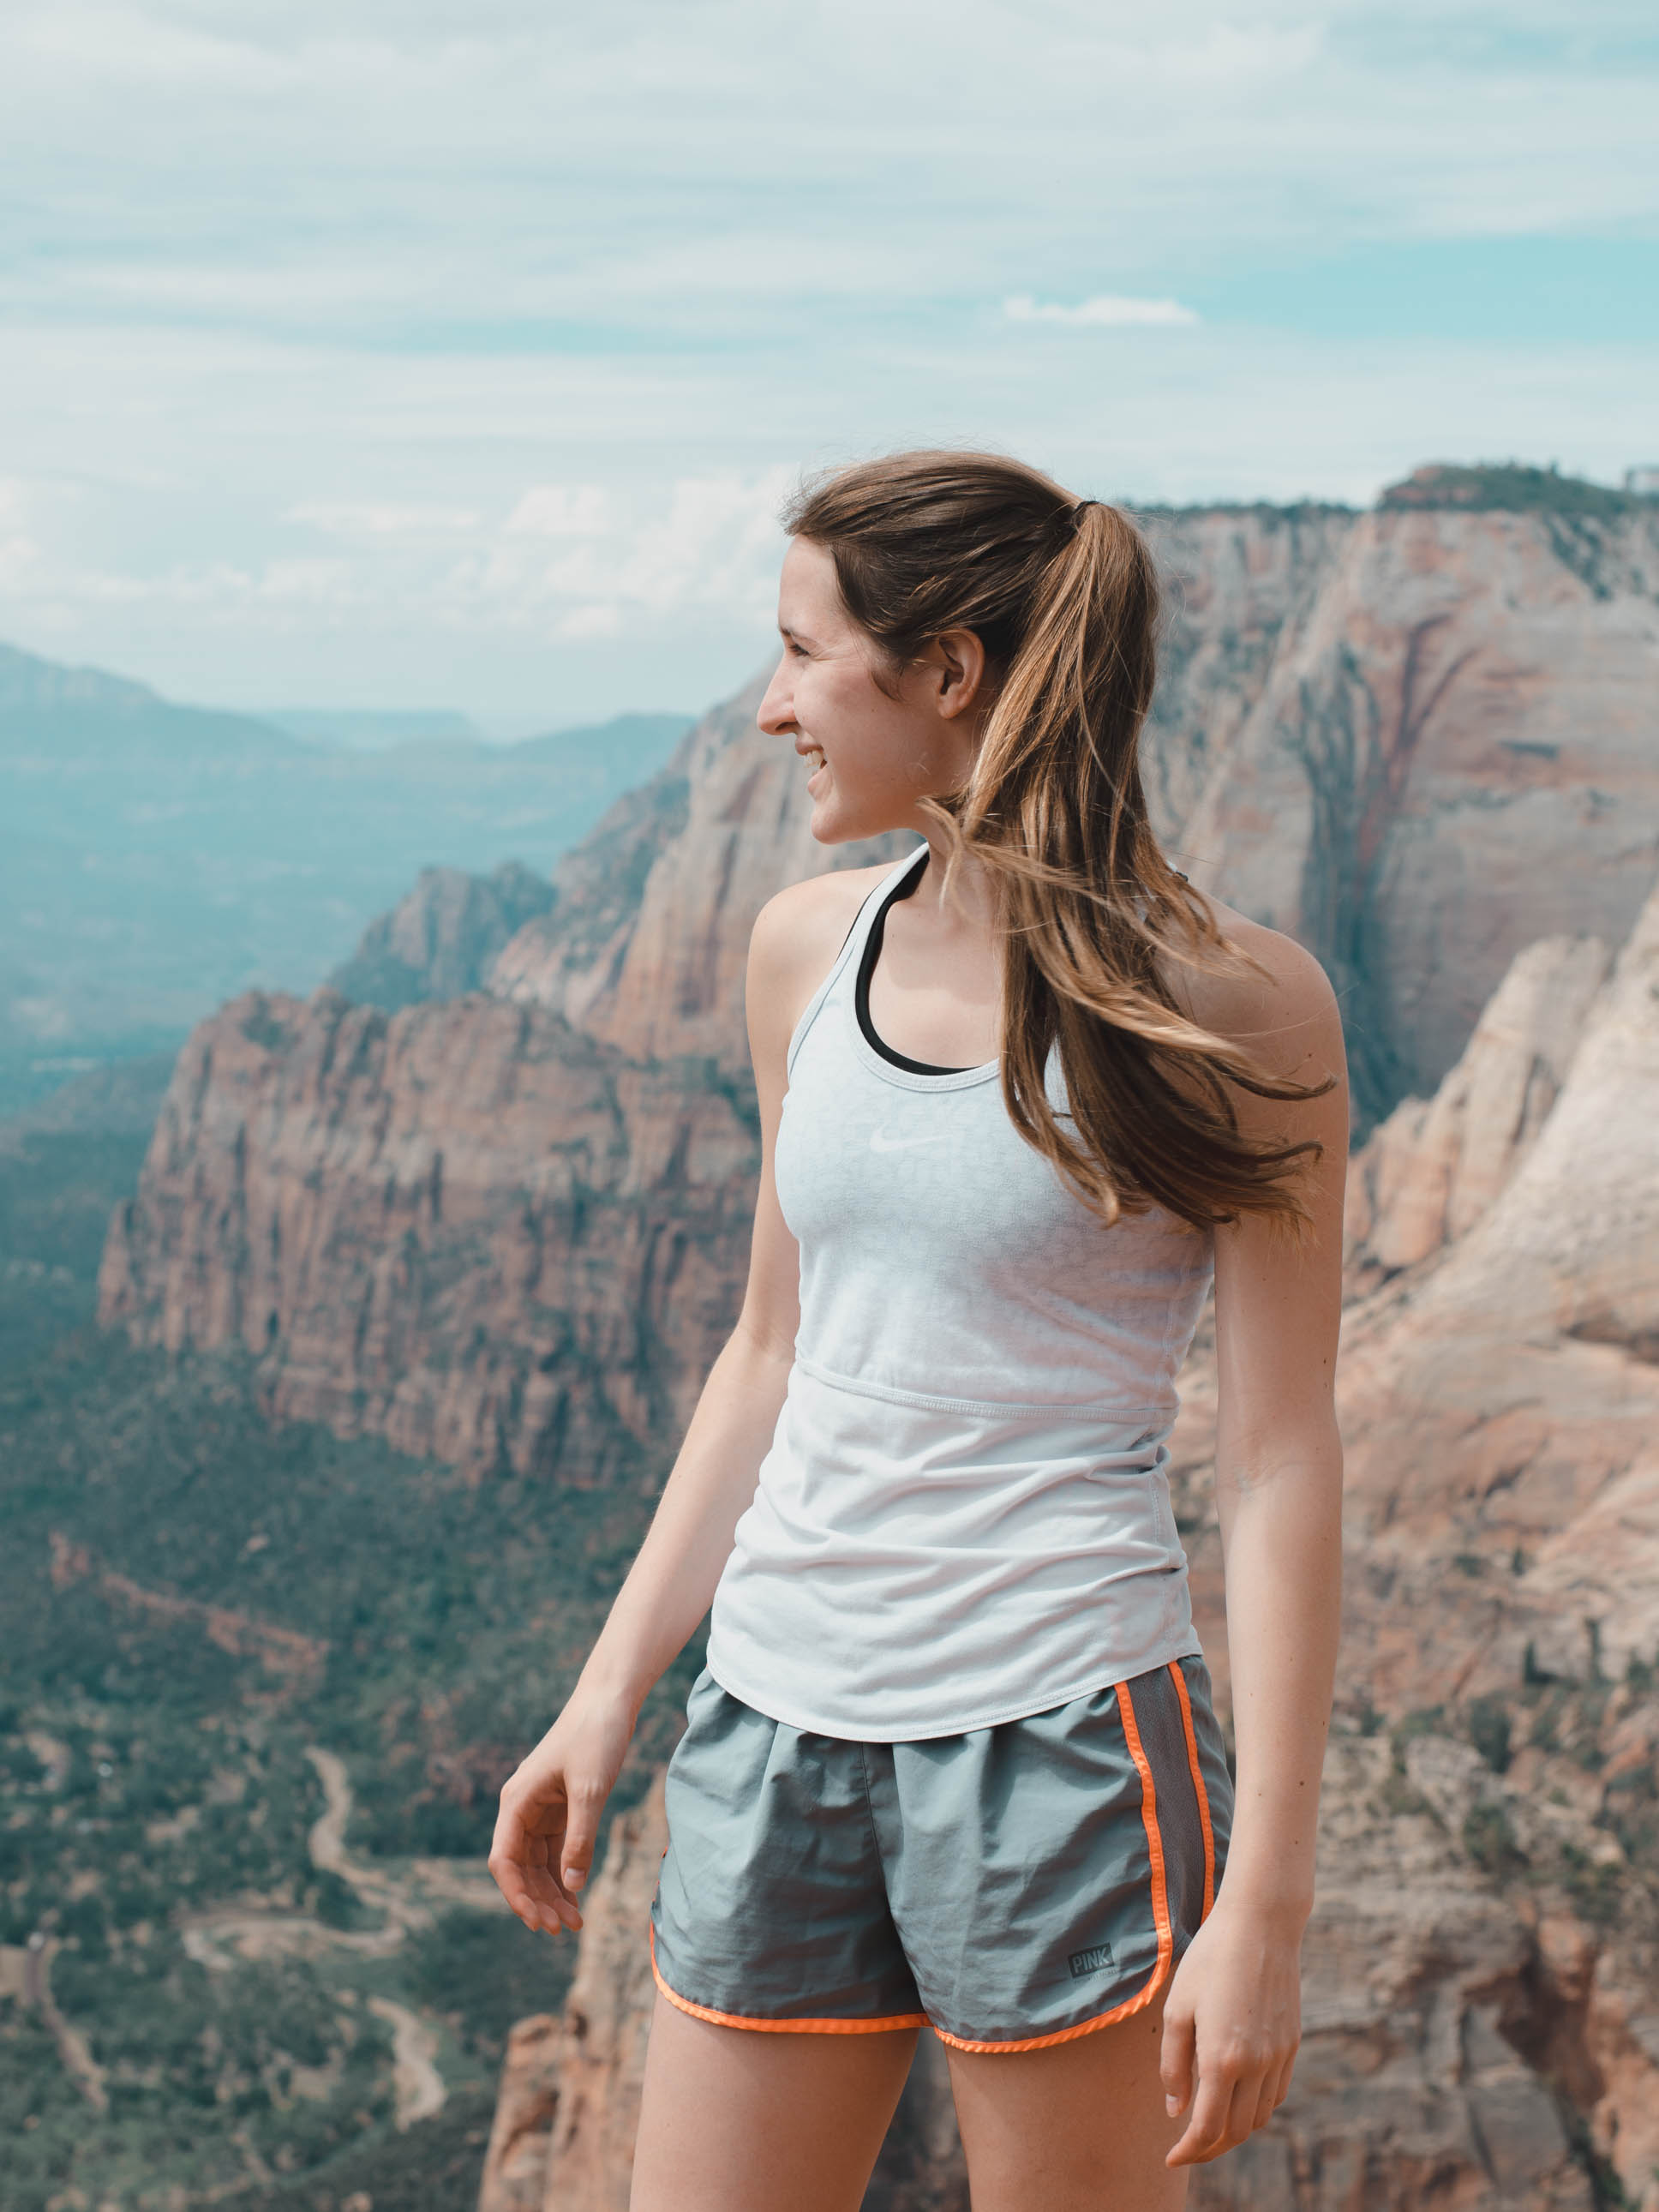 Standing on the top of Observation Point in Zion